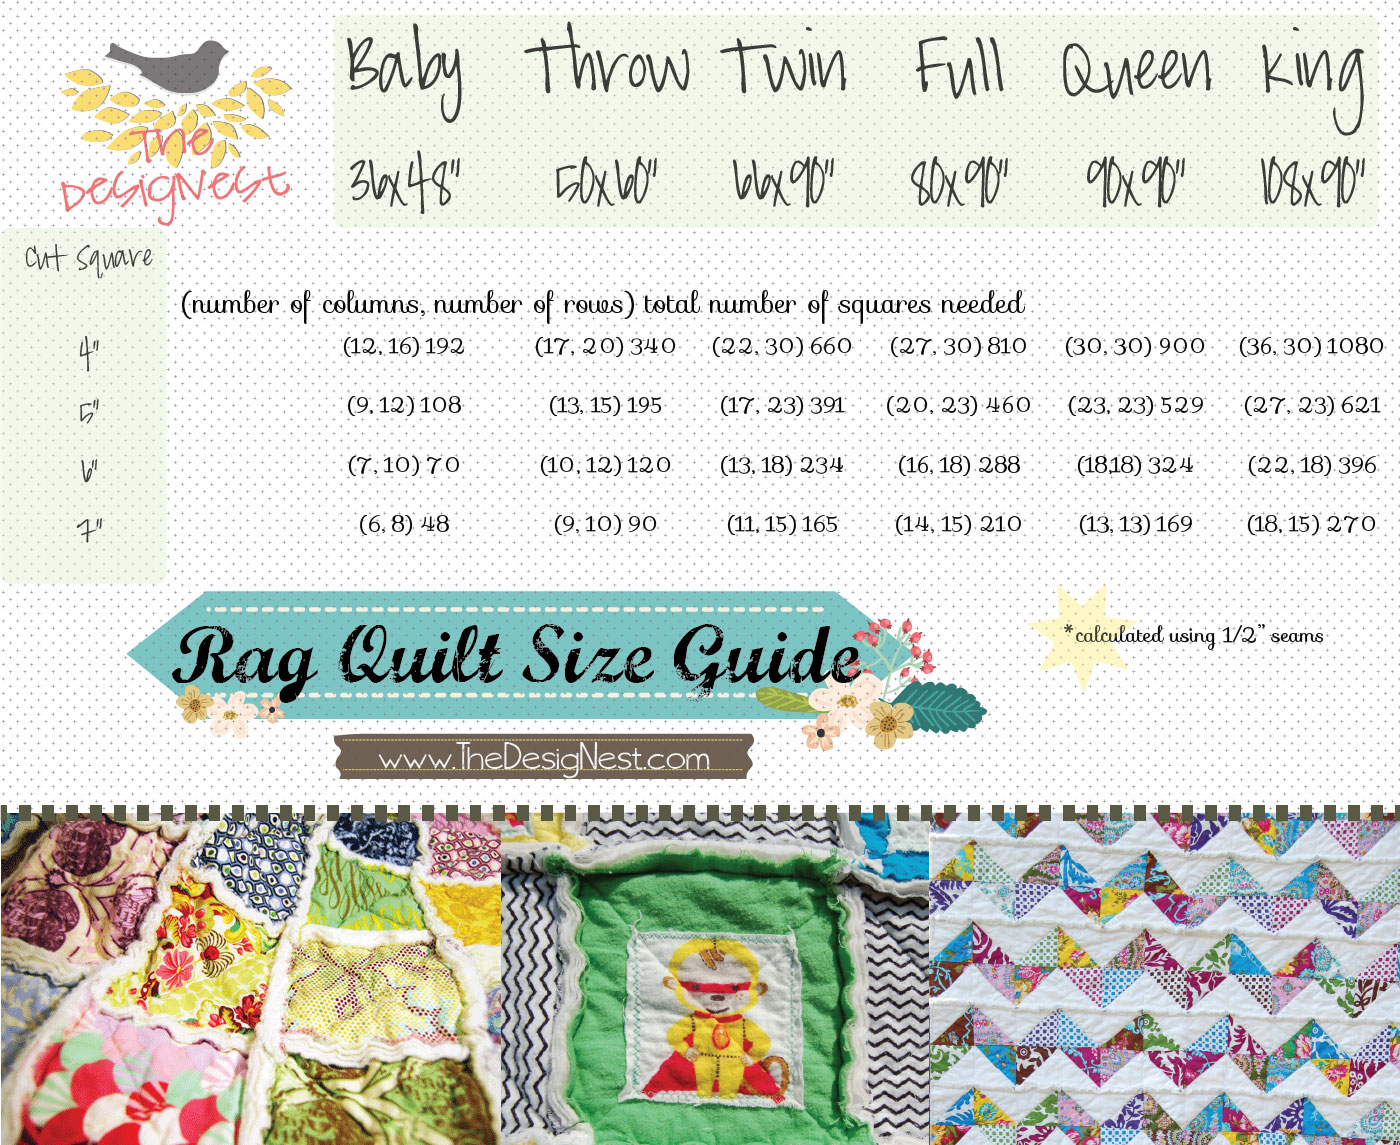 Crib size quilts for sale -  Rag Quilt Instructions